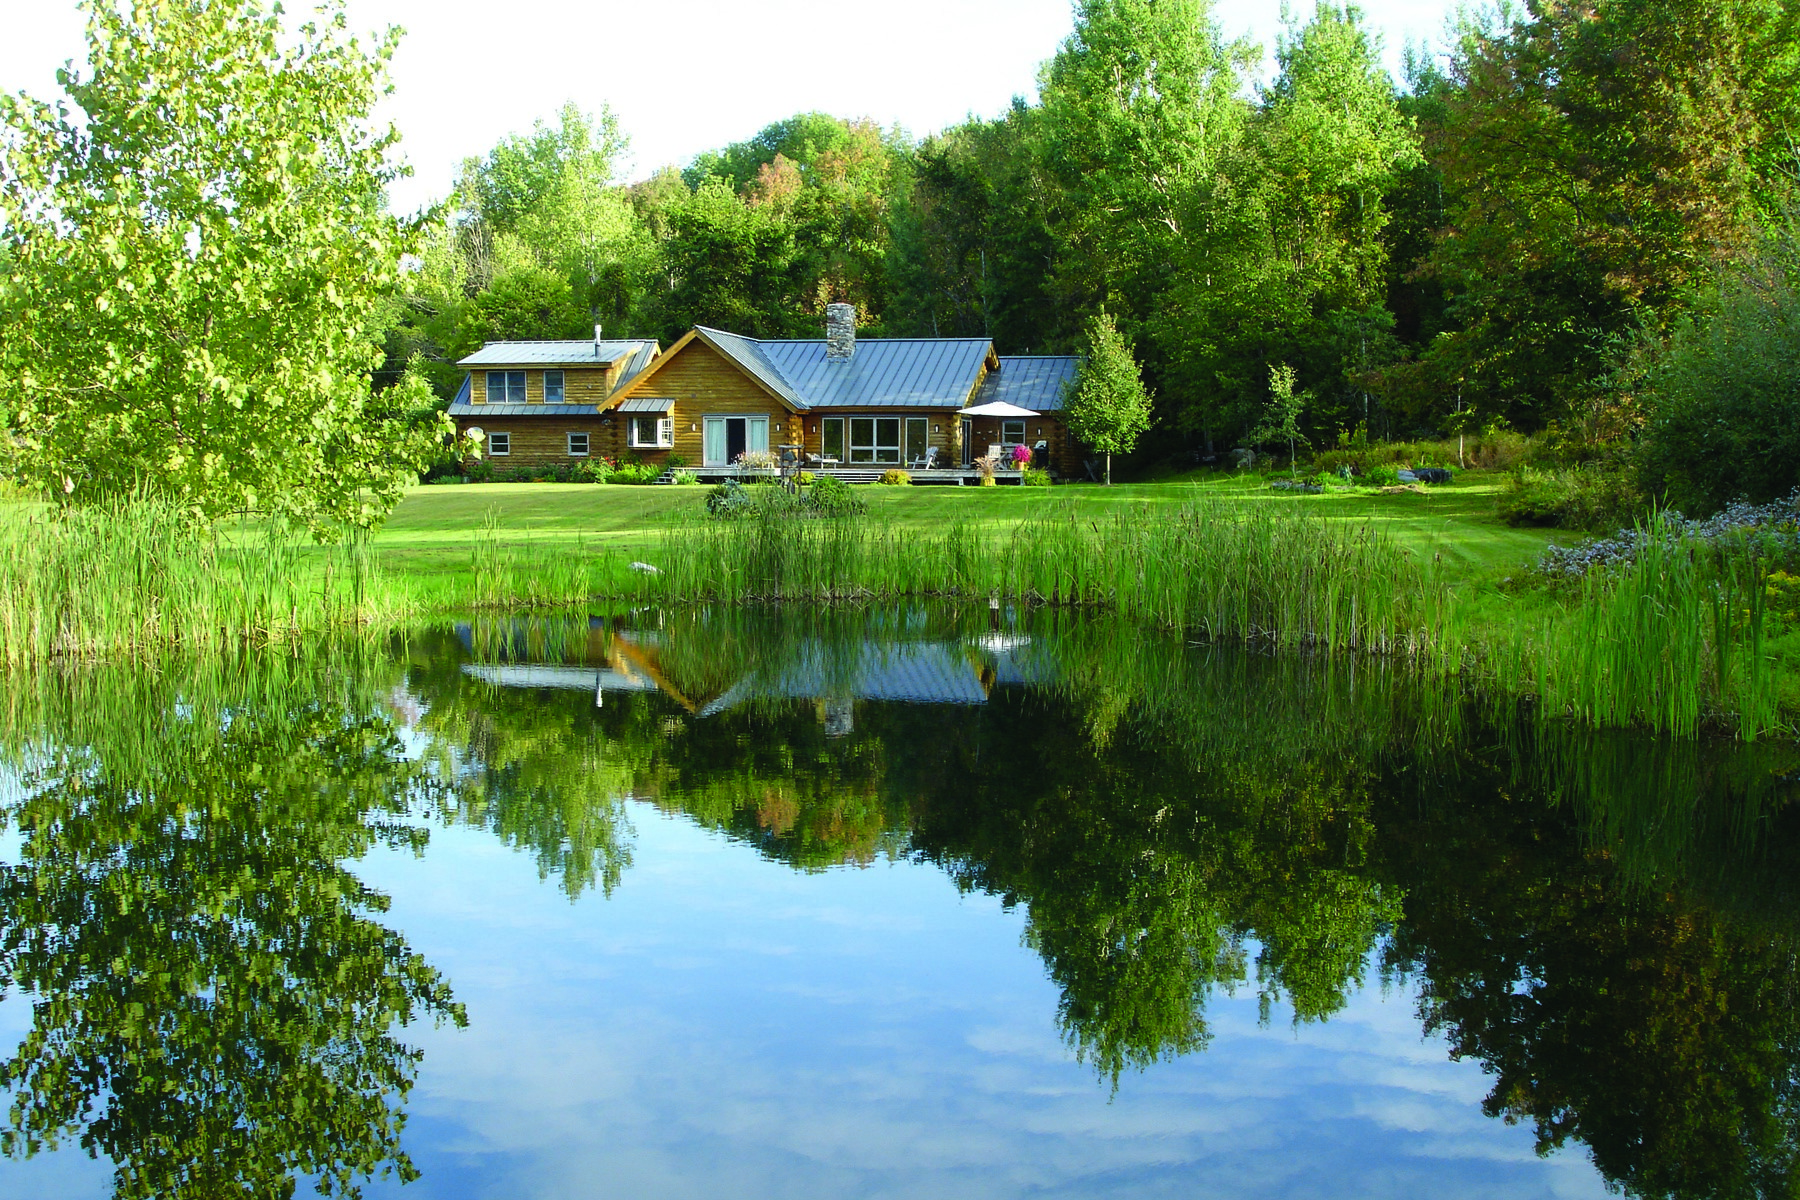 Single Family Home for Sale at Country Chic Log Home 55 Kelley Hill Rd Danby, Vermont 05739 United States